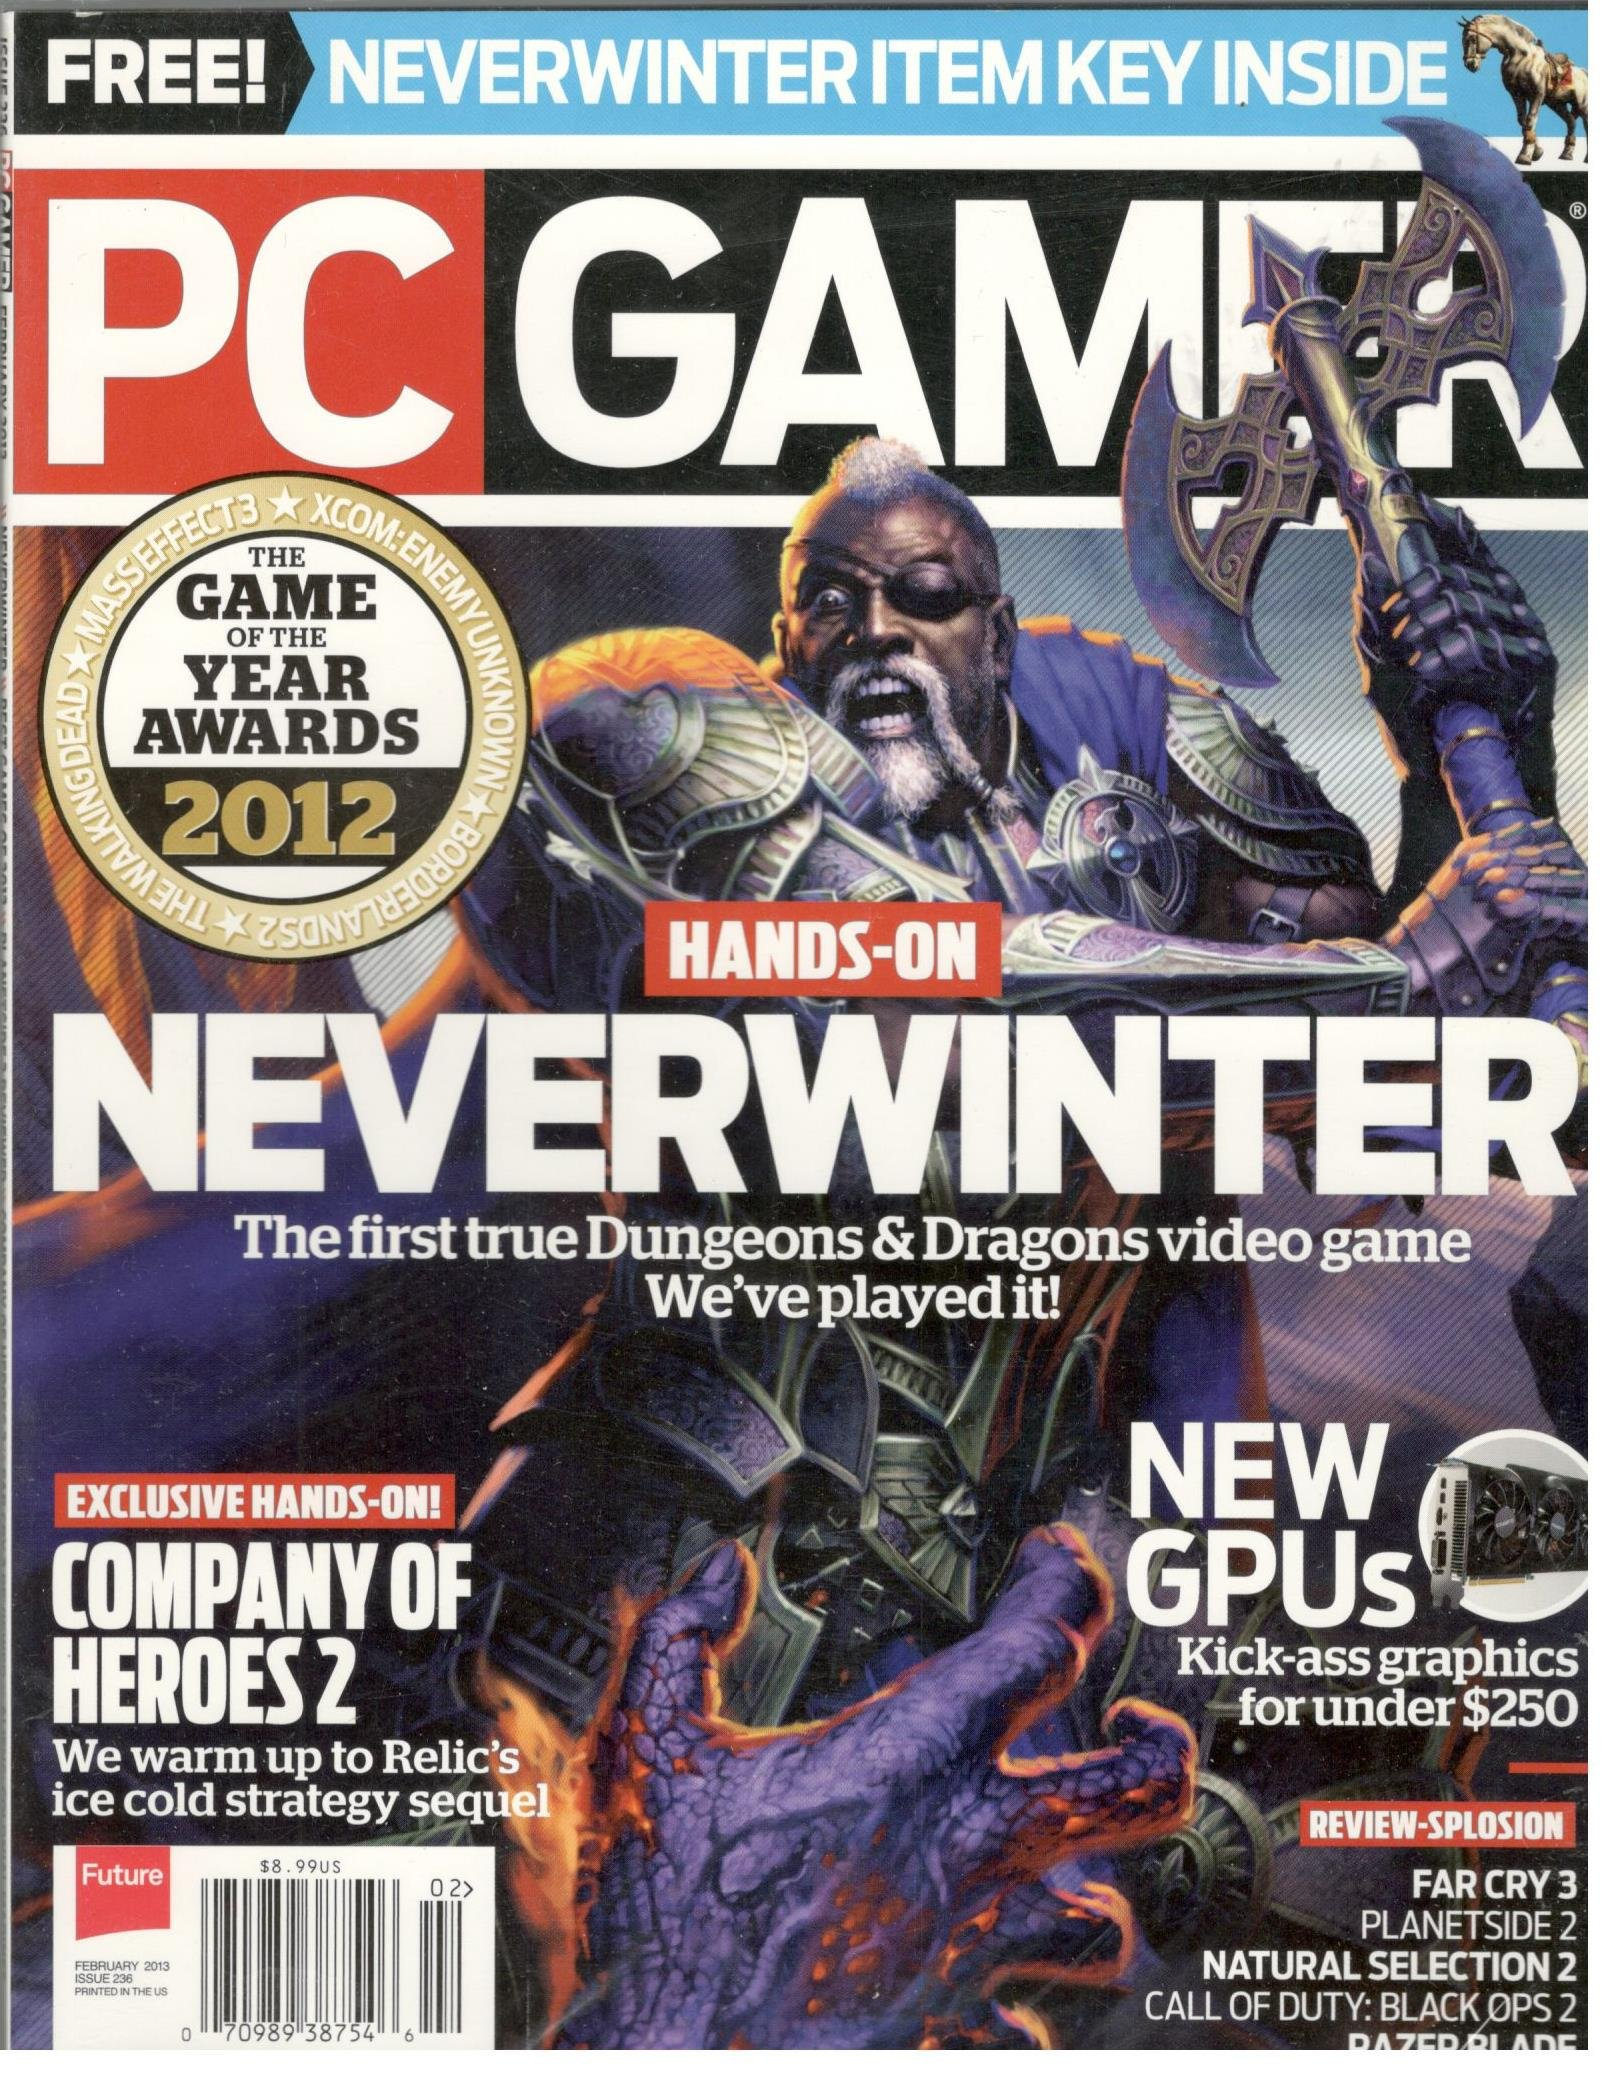 PC Gamer Magazine # 236 (February 2013, Neverwinter